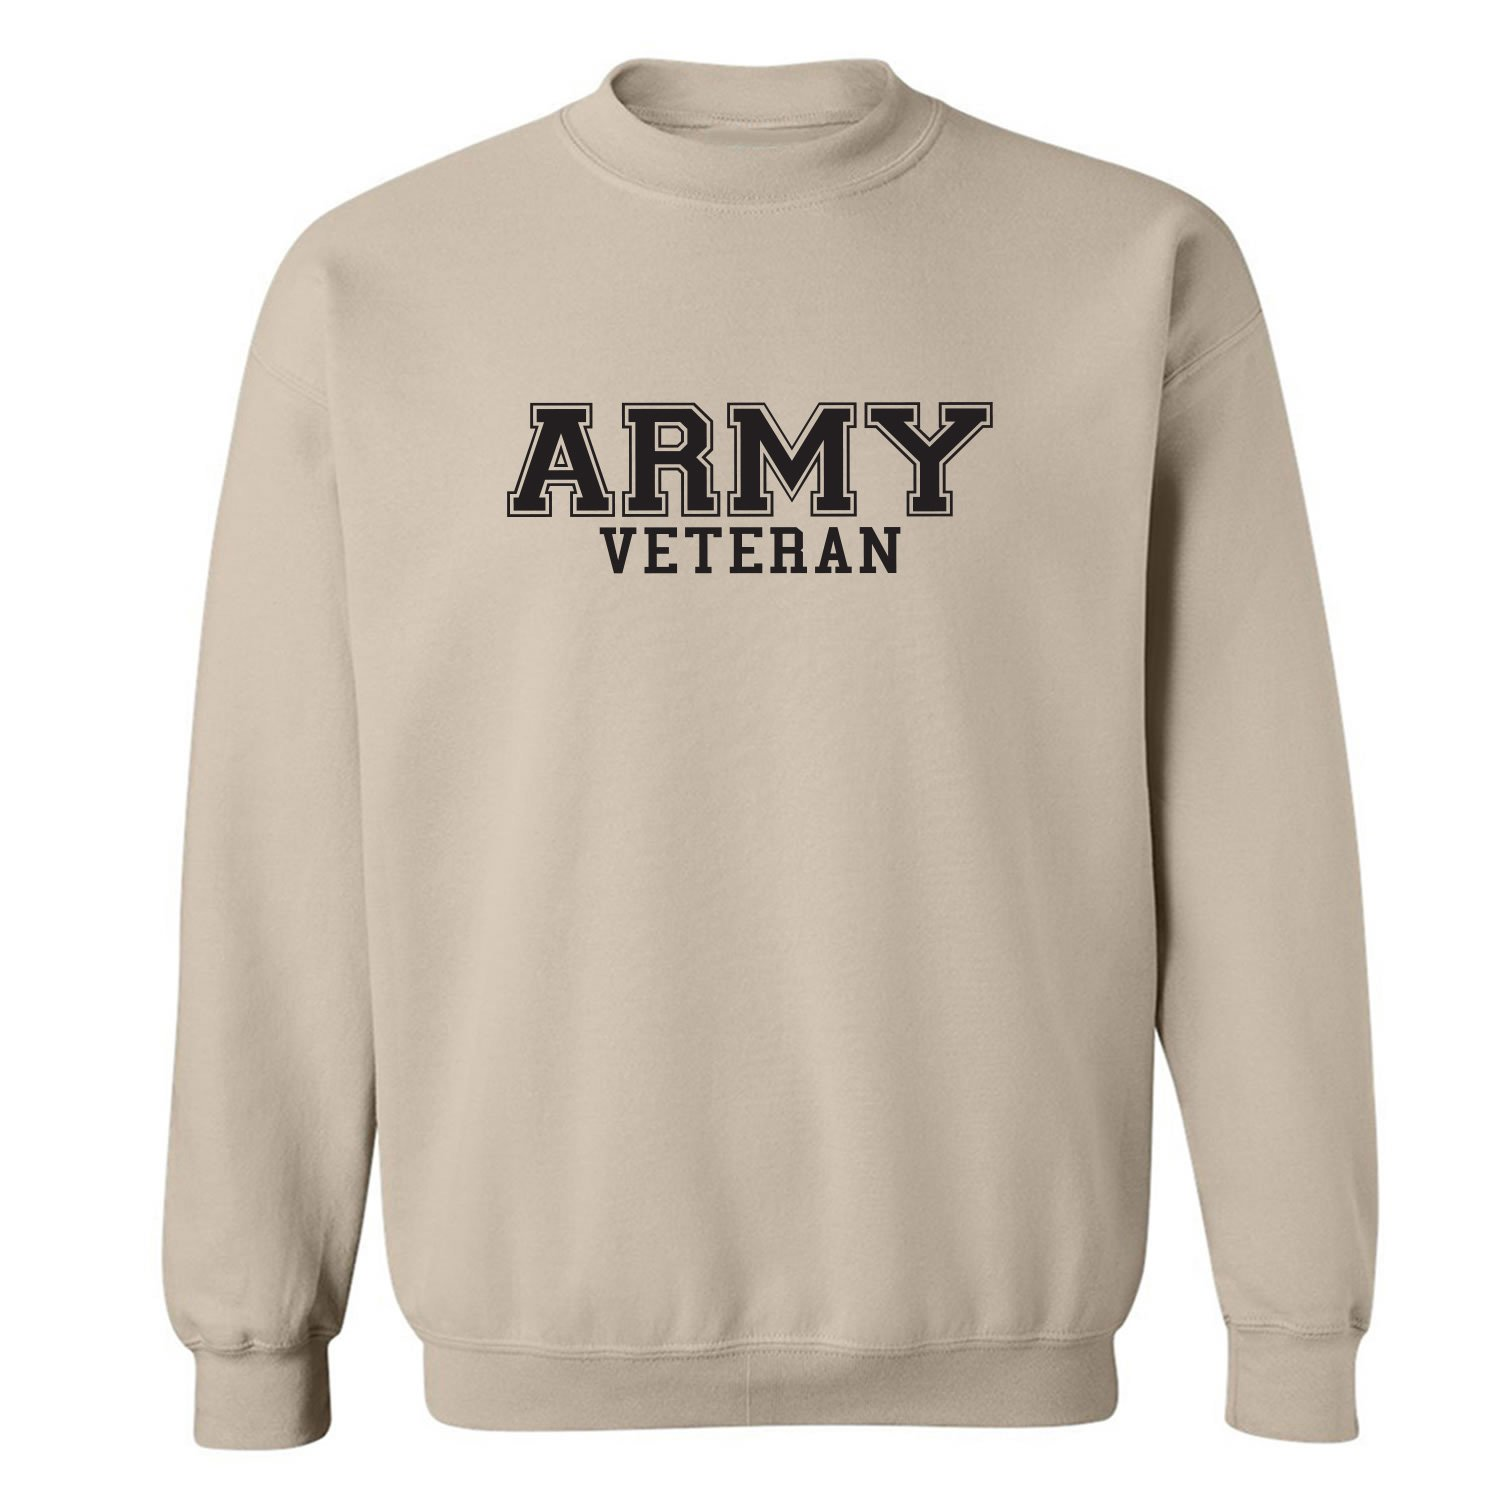 dc910a071 Amazon.com  Army Veteran Military Style Crewneck Sweatshirt in Sand   Clothing